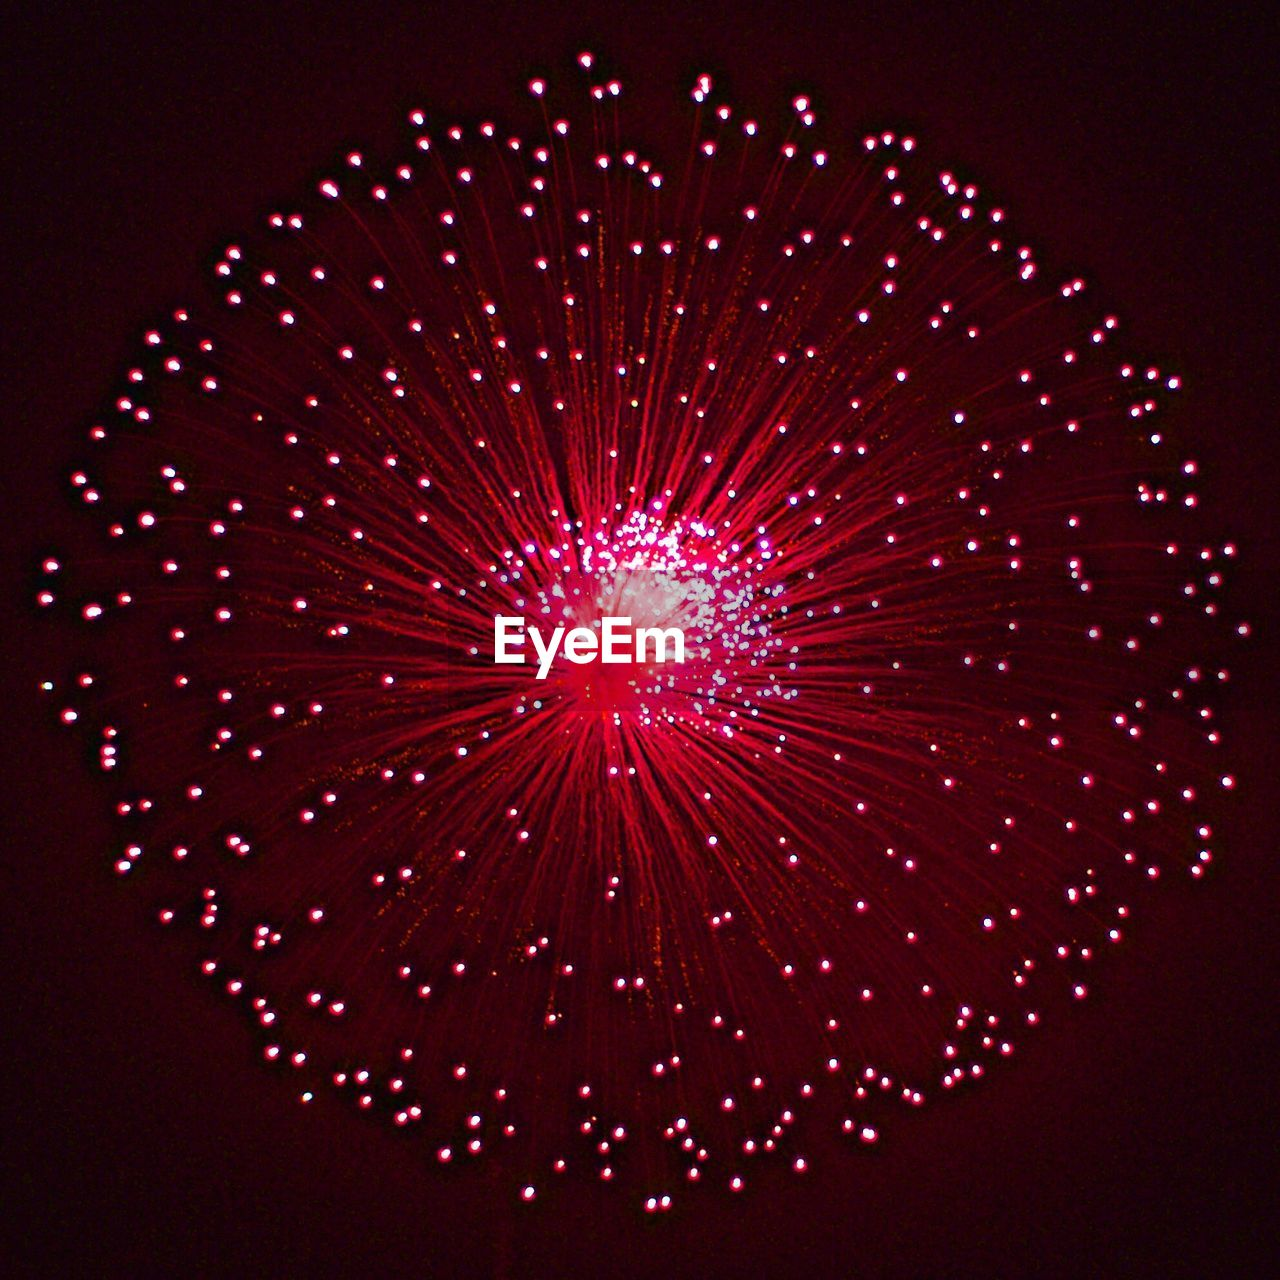 night, exploding, firework display, celebration, firework - man made object, illuminated, low angle view, arts culture and entertainment, no people, long exposure, red, multi colored, sky, indoors